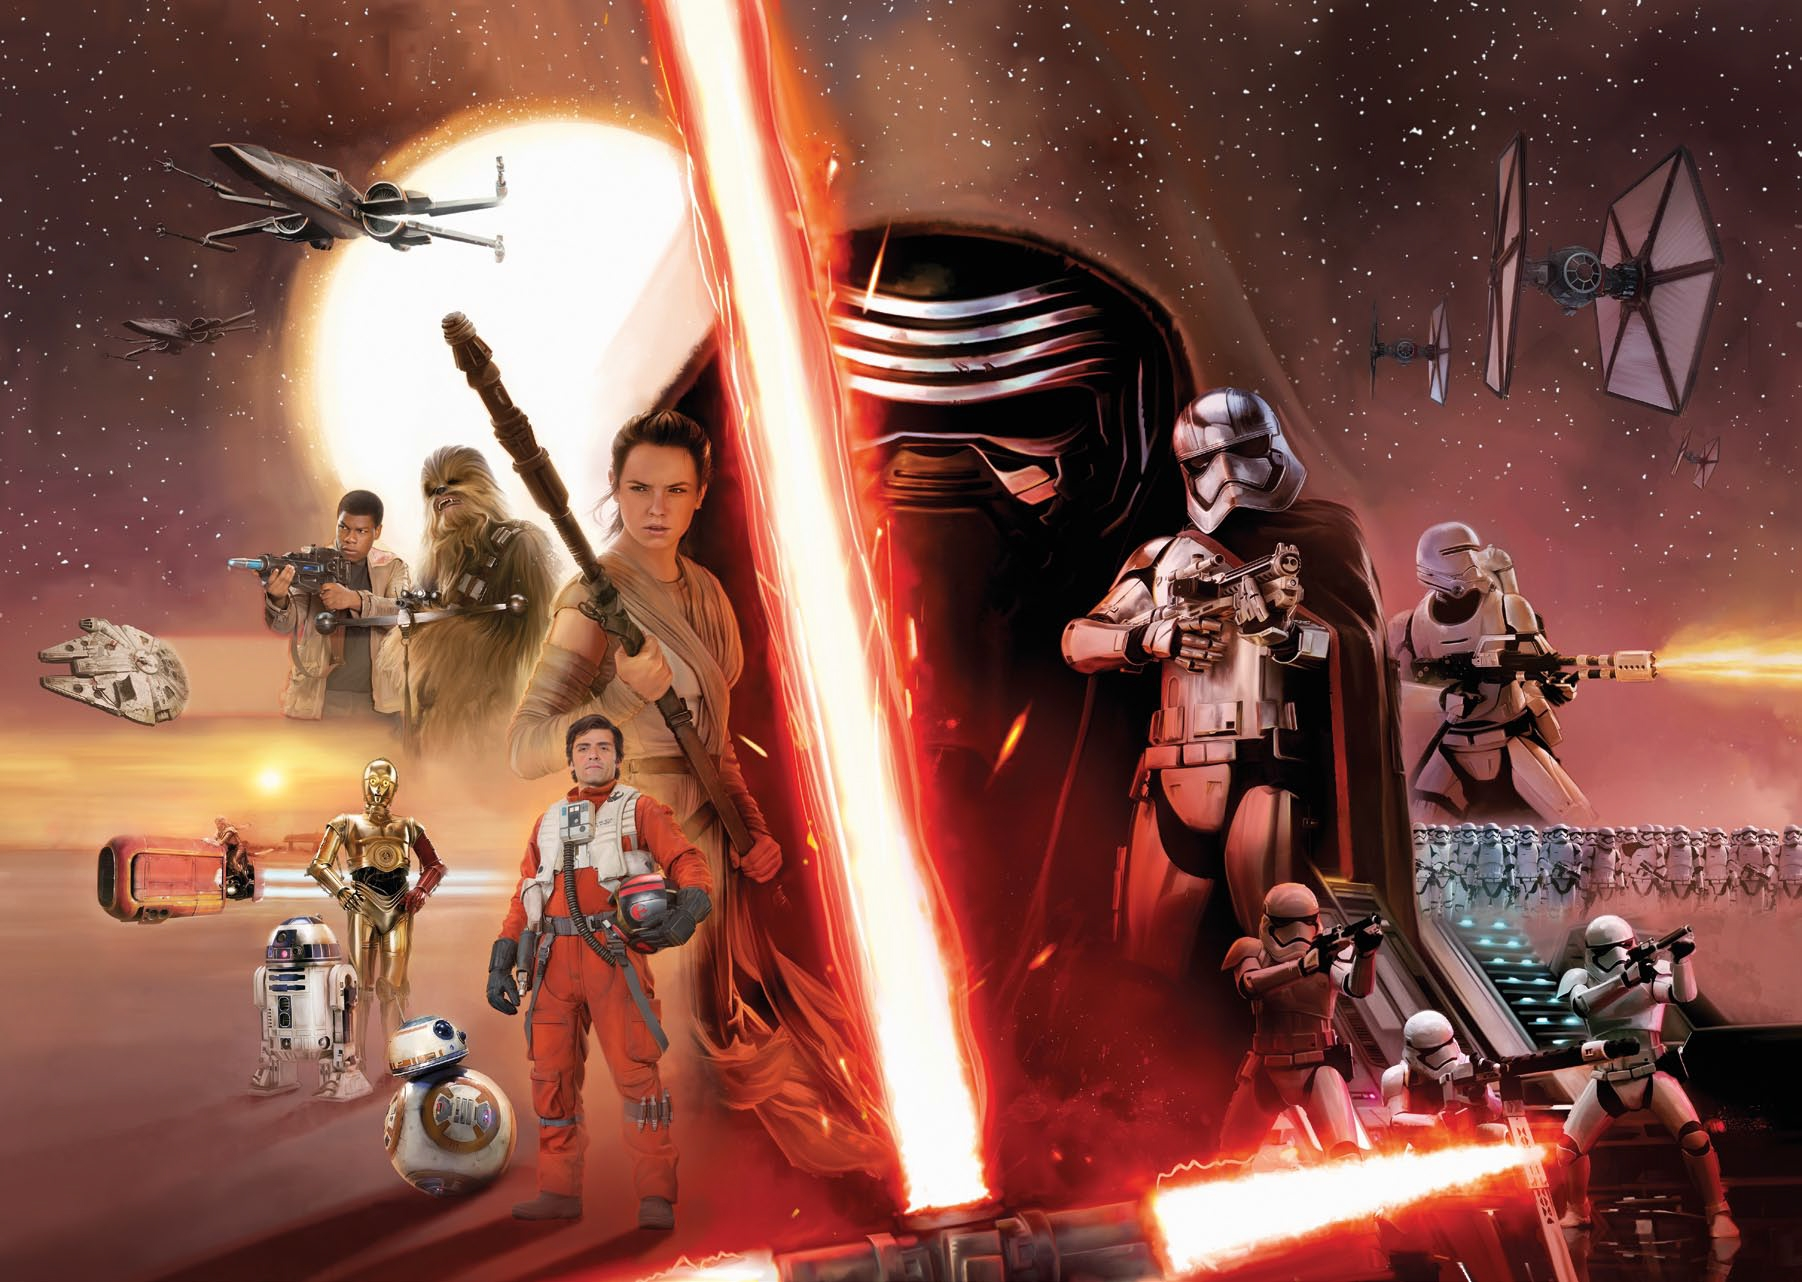 Poster Xxl Star Wars Ep7 Panoramique Komar So Nuit